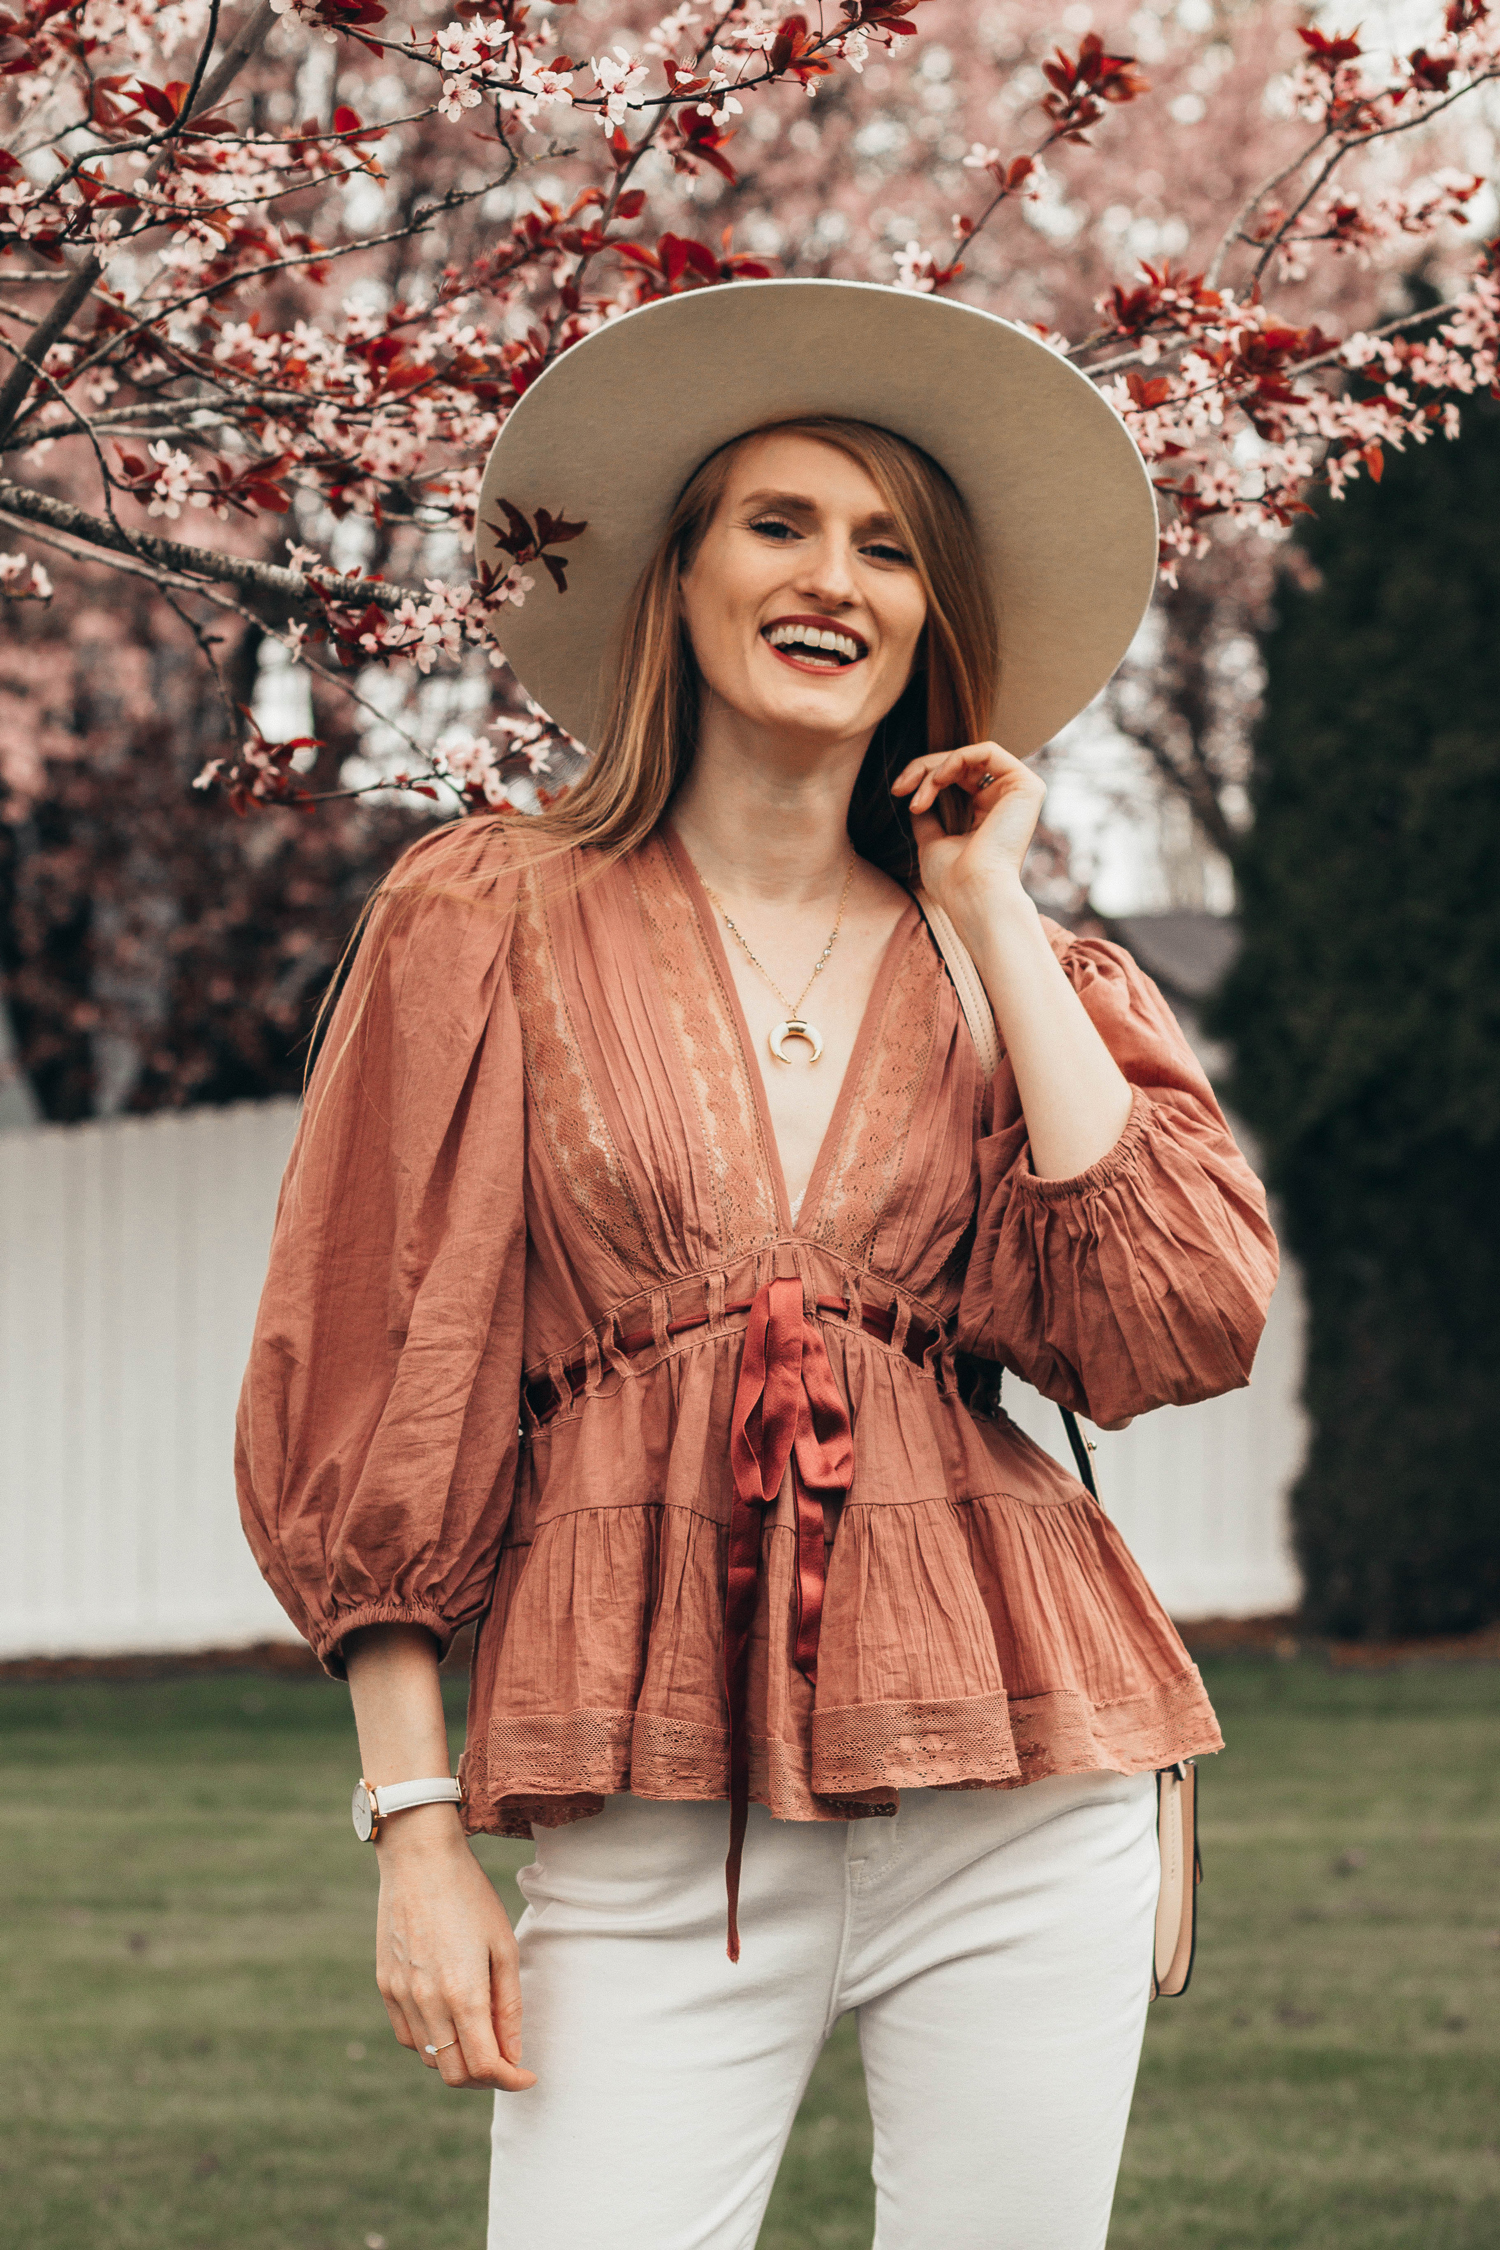 Free People Tunic Blouse Cherry Blossoms Favorite Romance